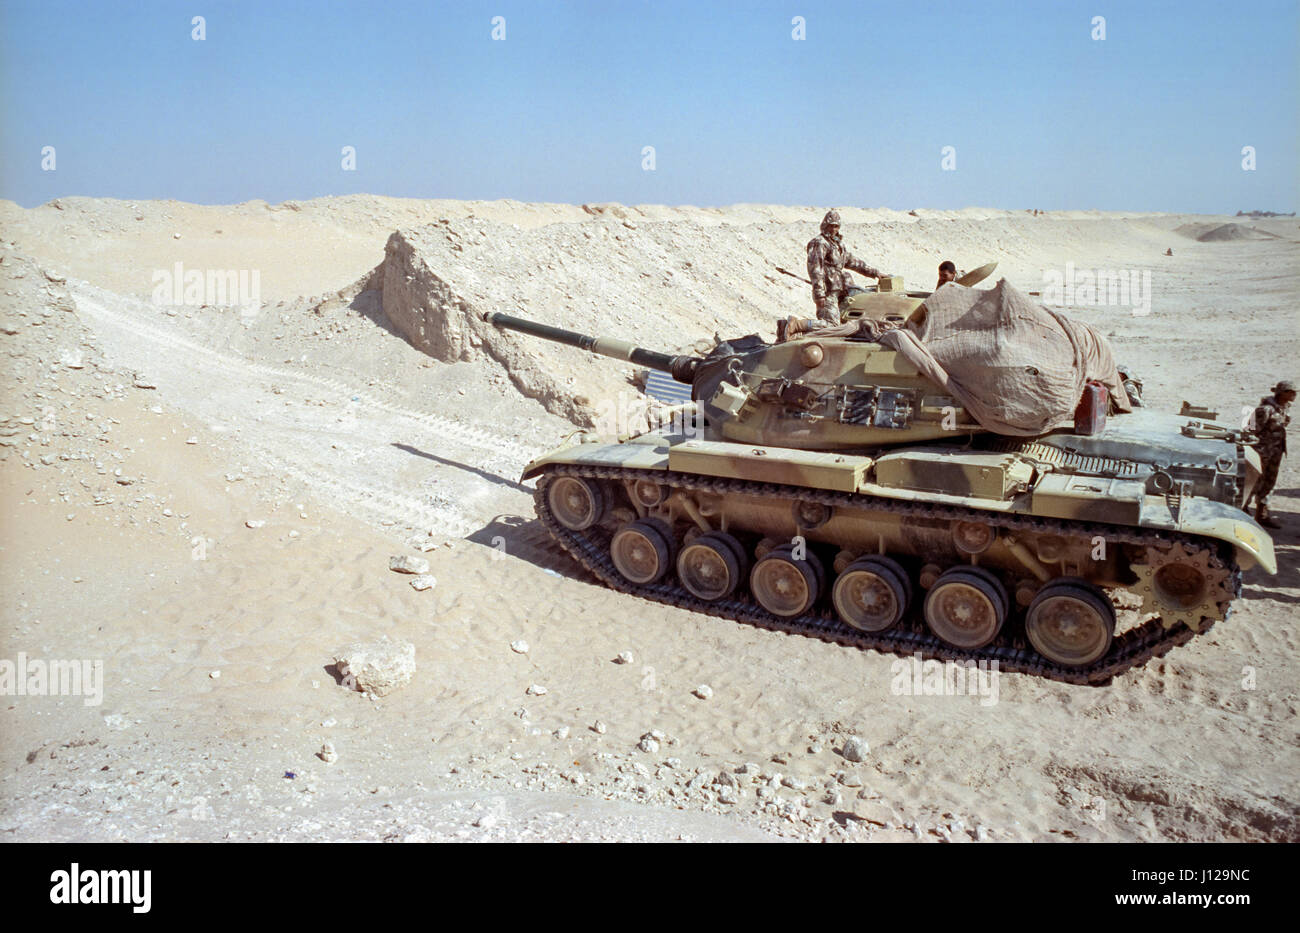 Egyptian soldiers positions a M60 battle tank along the sand berm border wall on the frontline separating Kuwait - Stock Image